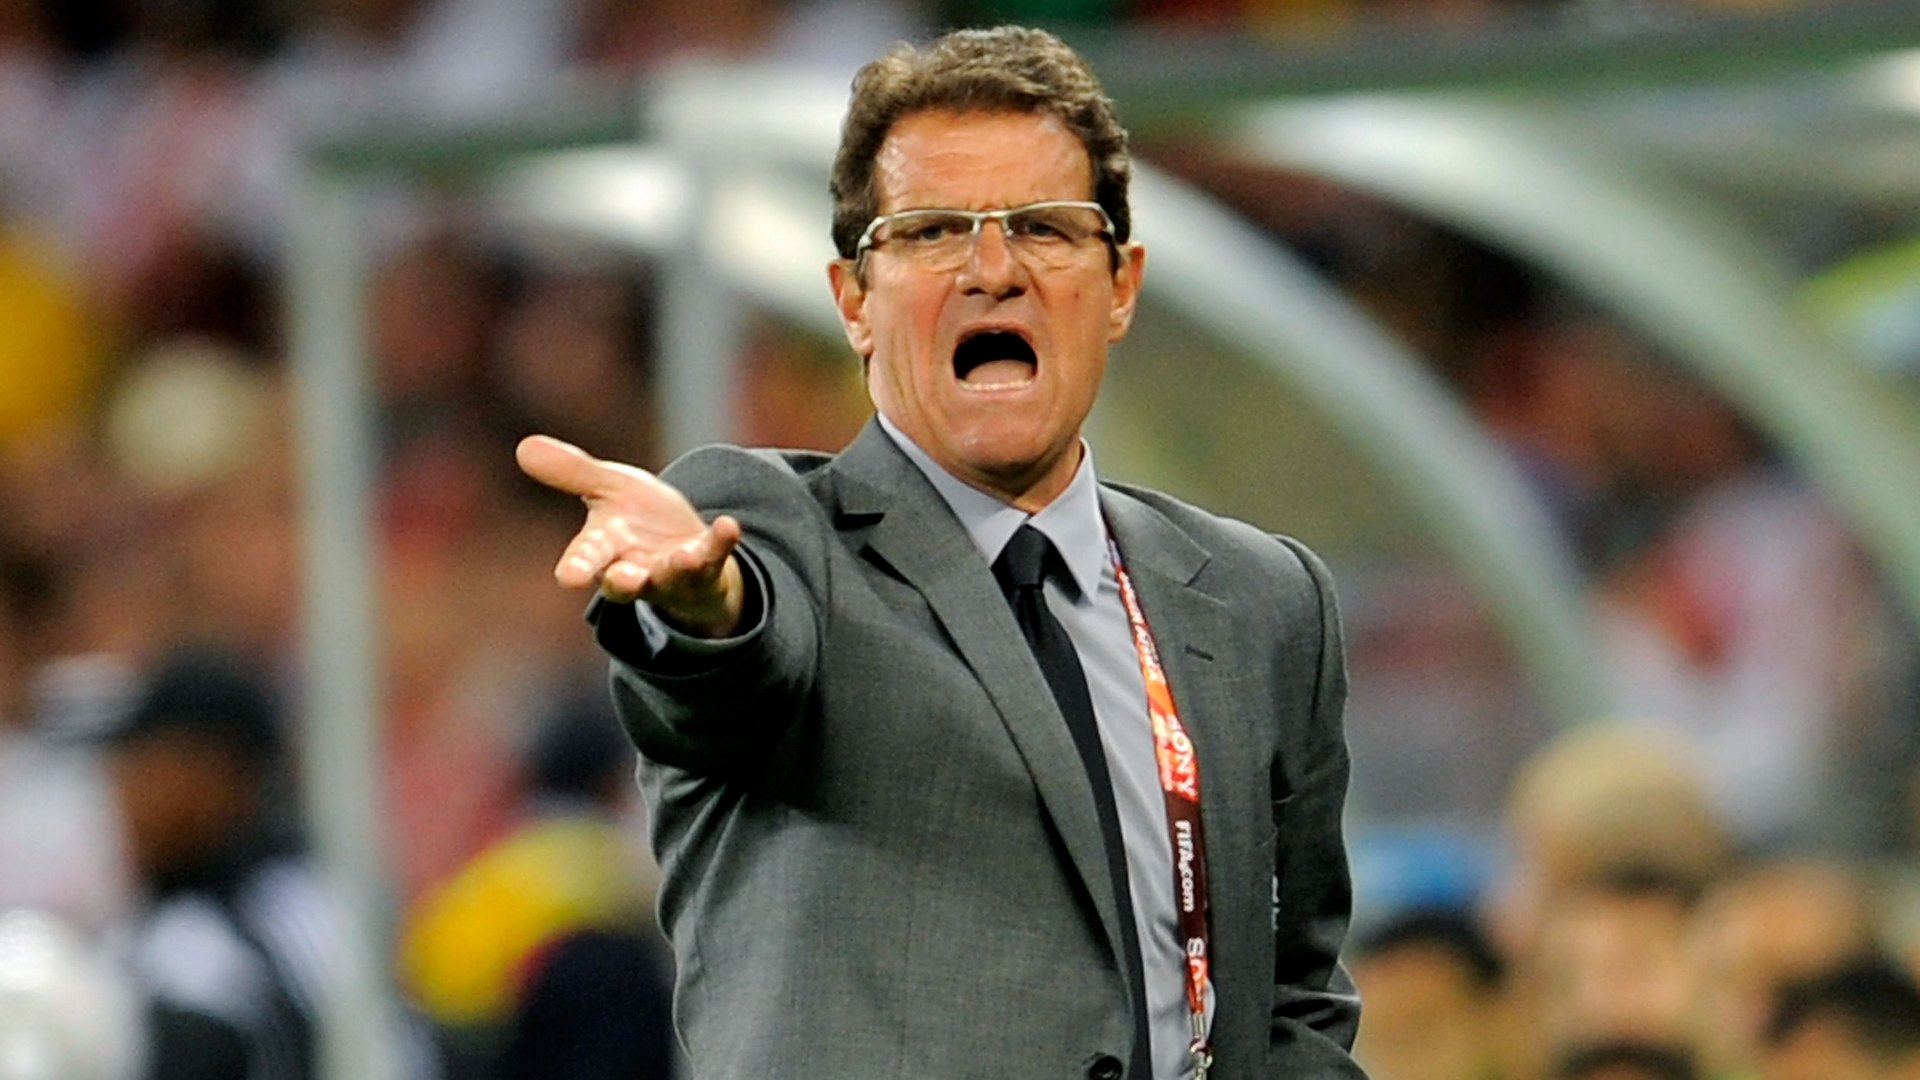 Capello al Milan?